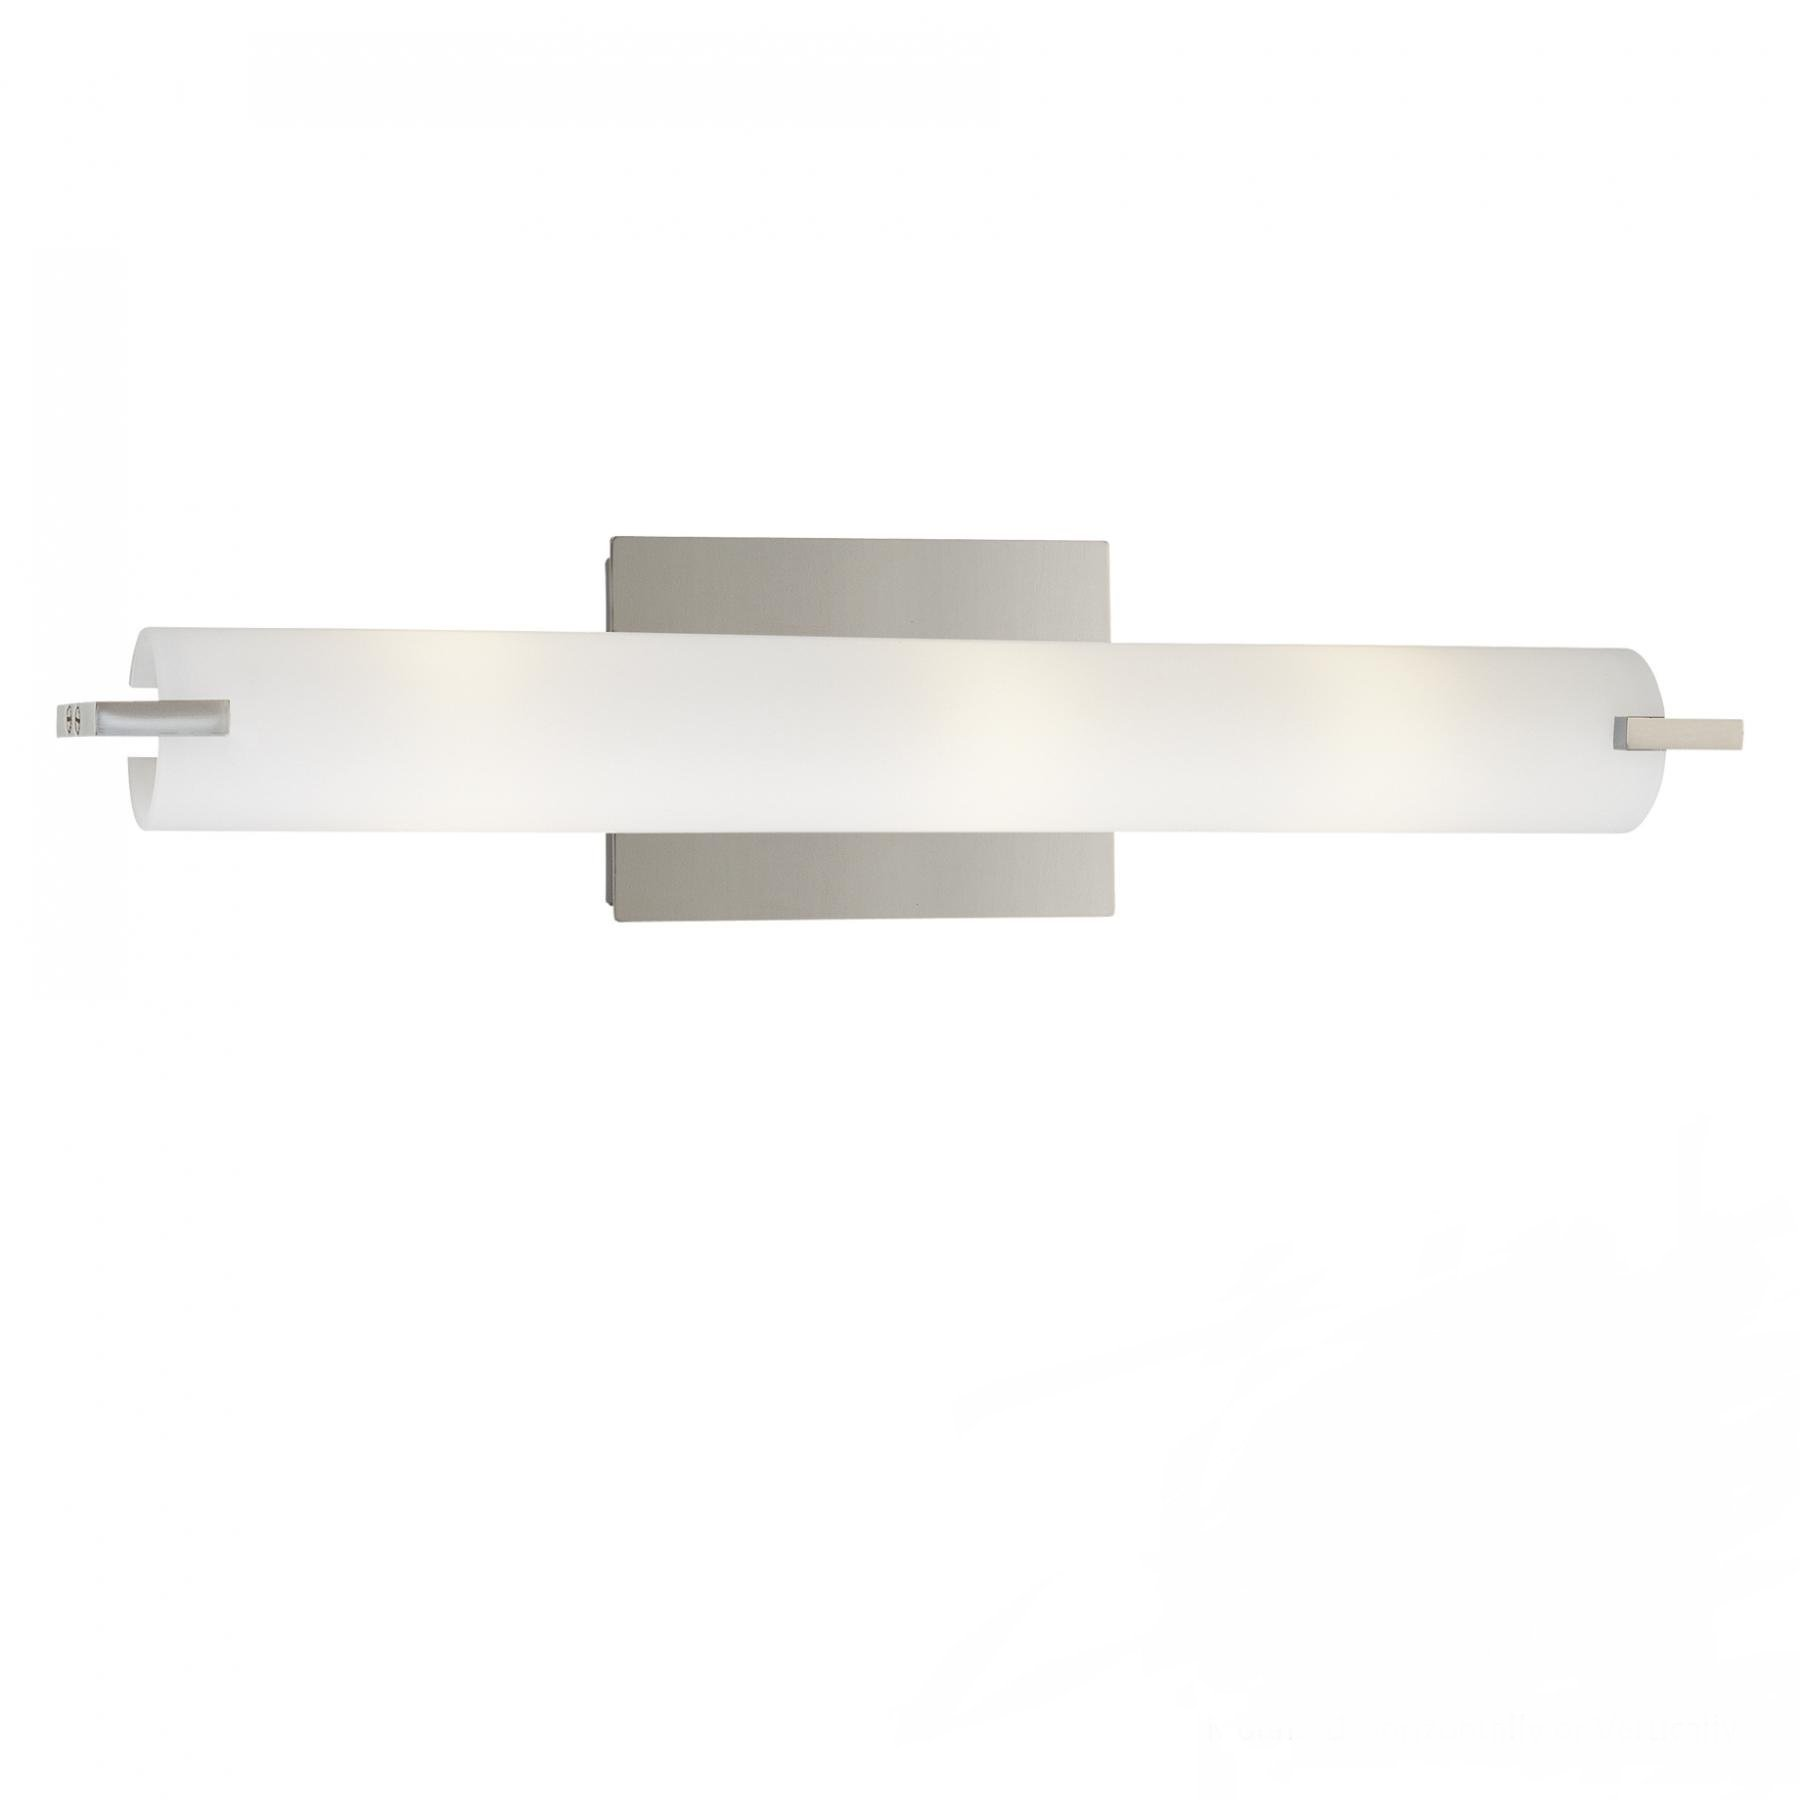 George Kovacs P5044-077-L, Tube, LED Bath Fixture, Chrome